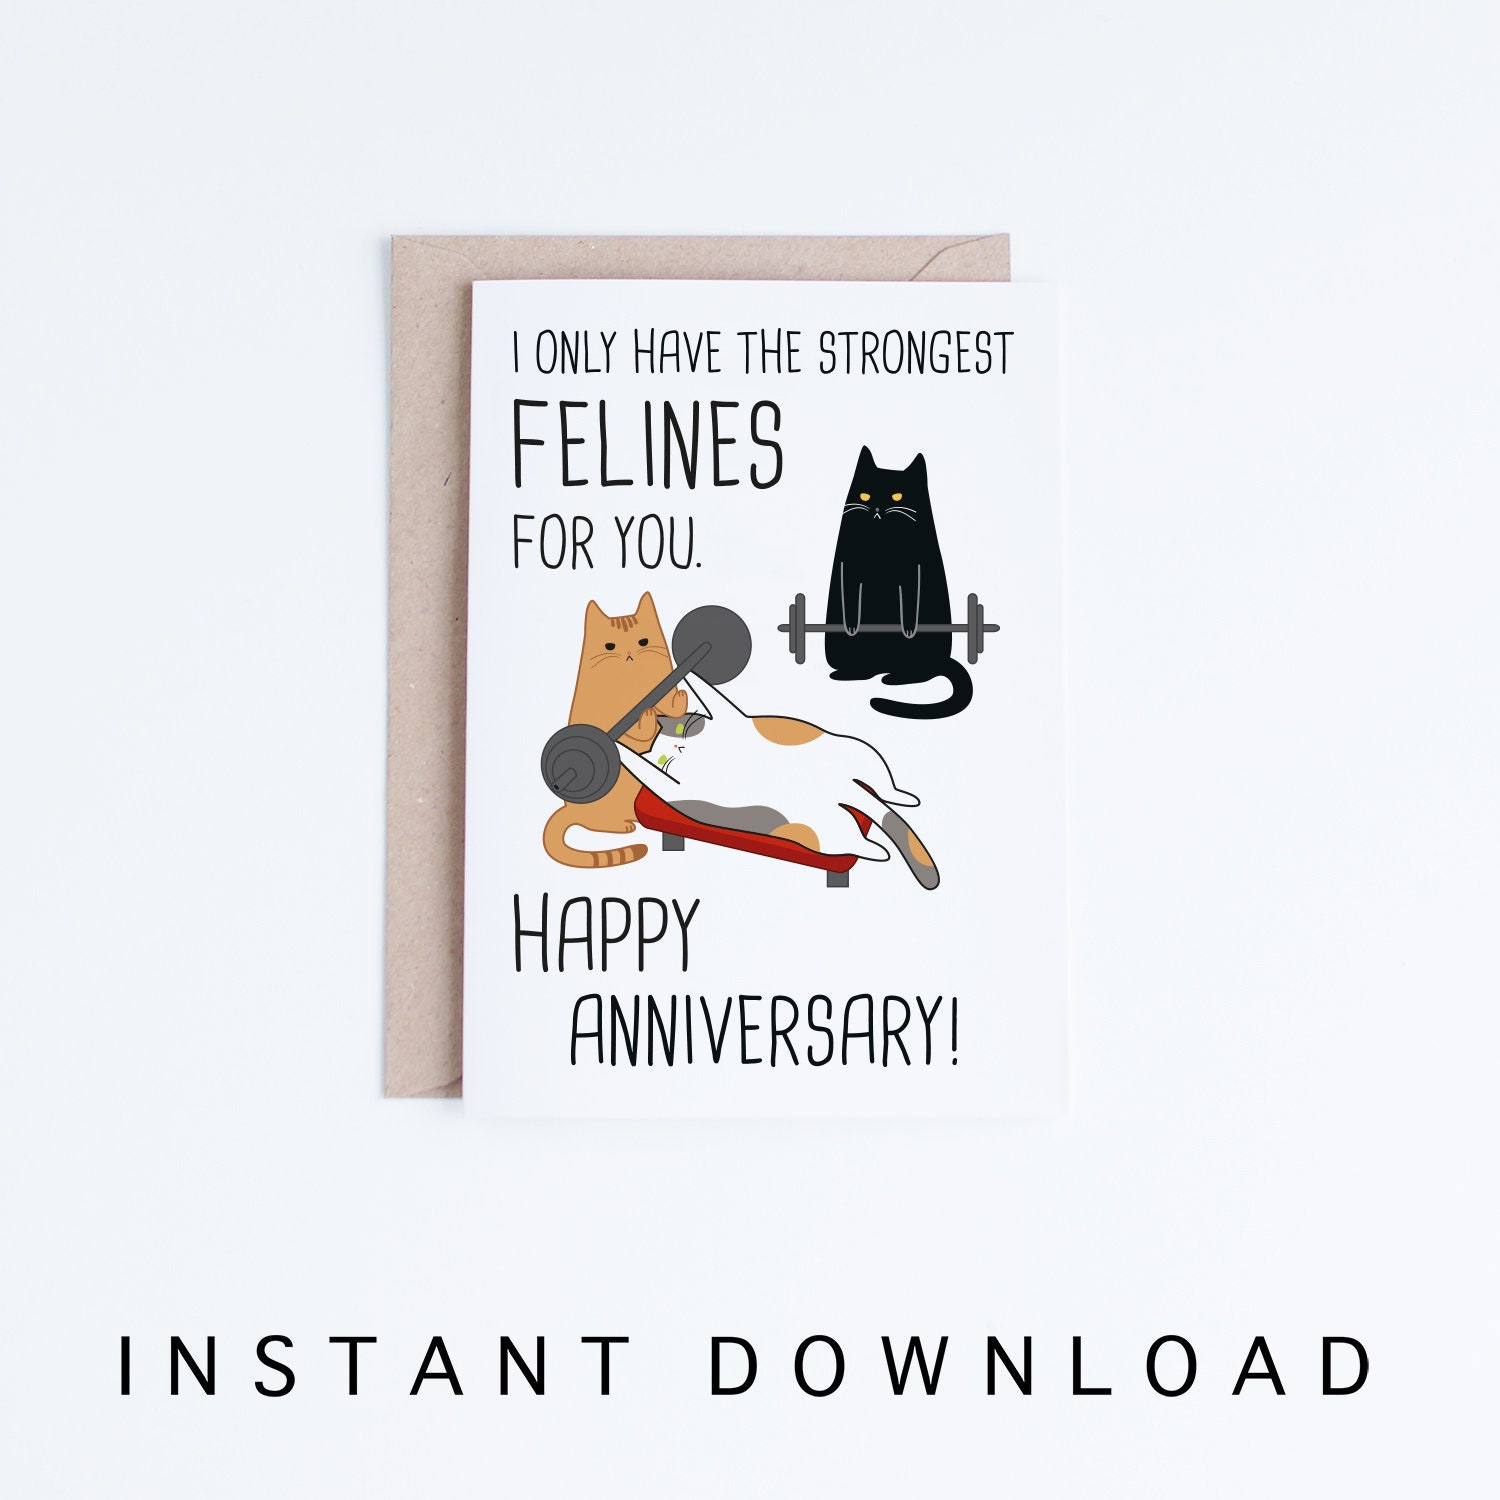 graphic regarding Printable Anniversary Cards known as Printable Anniversary Playing cards, Humorous Anniversary Black Cat Card Prompt Down load, Fat Lifting Cats, For Him, Punny, Partner, Boyfriend